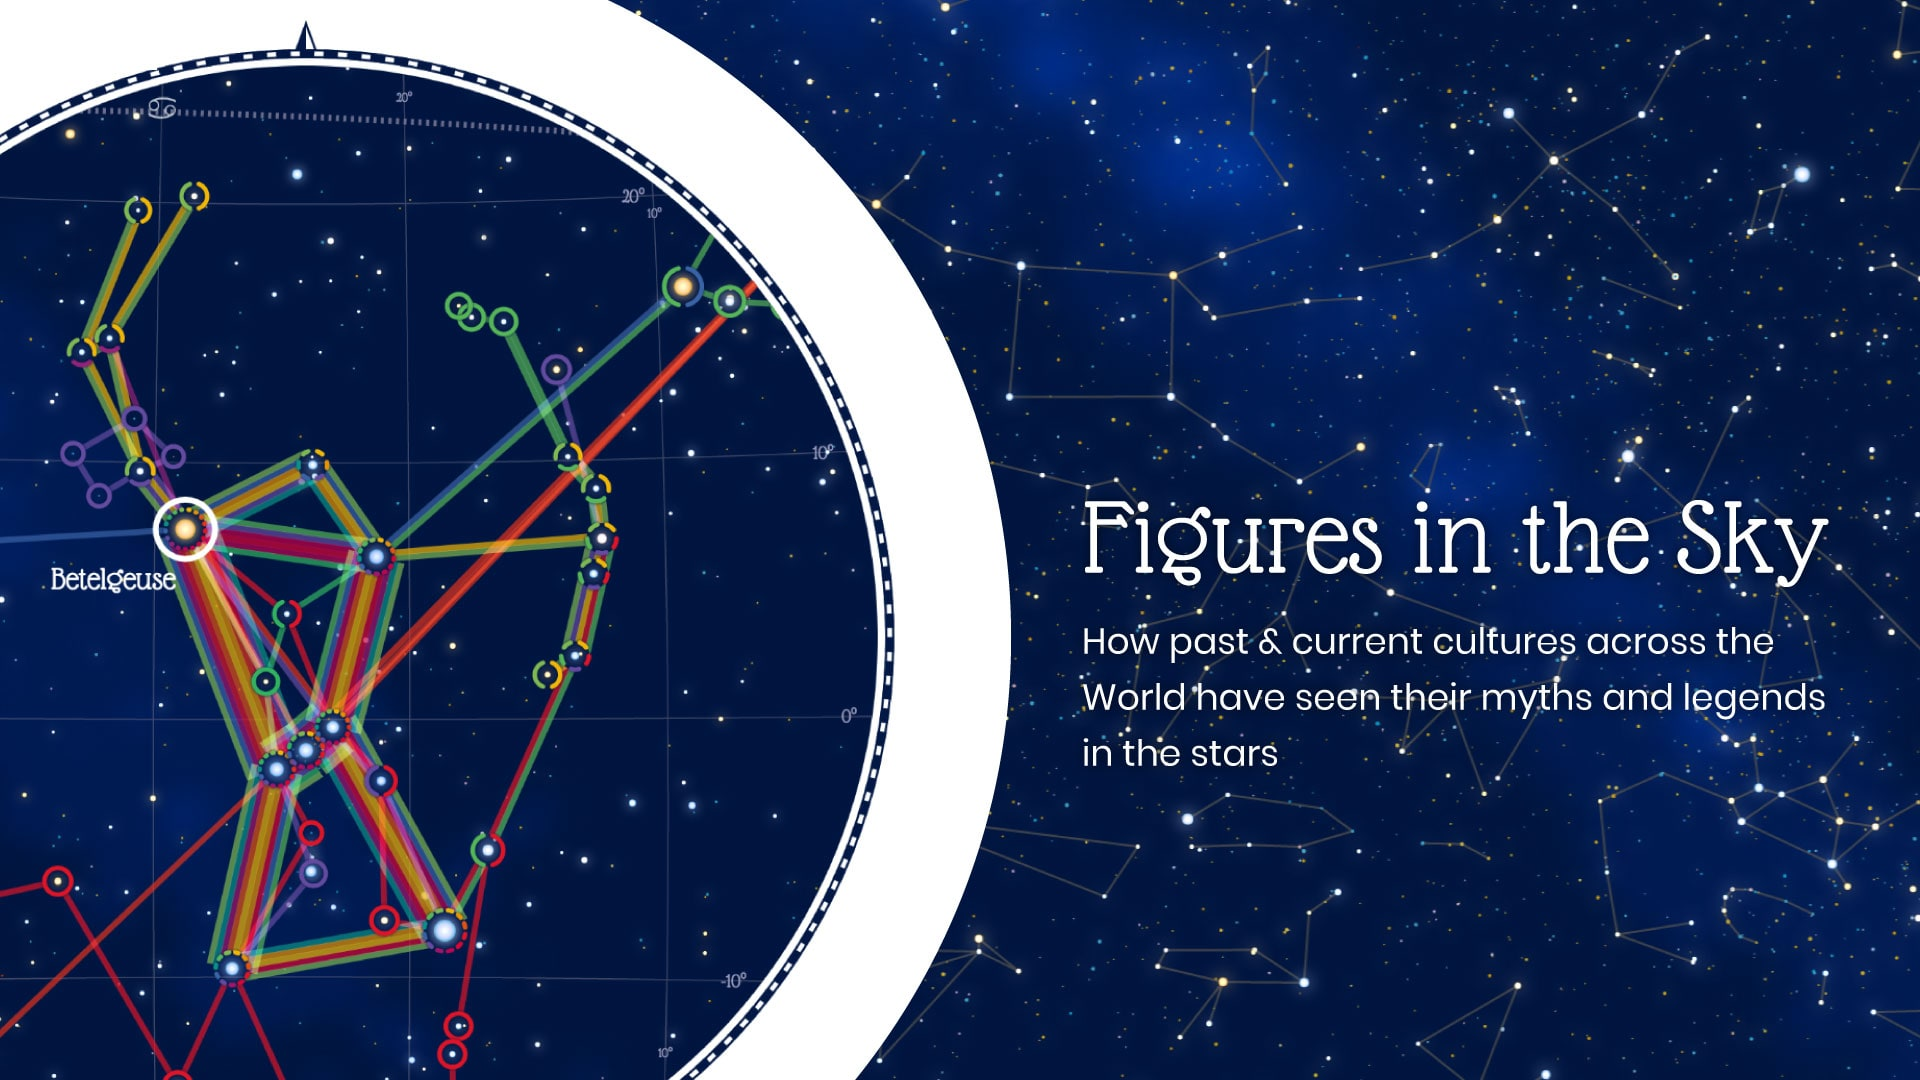 Figures in the Stars